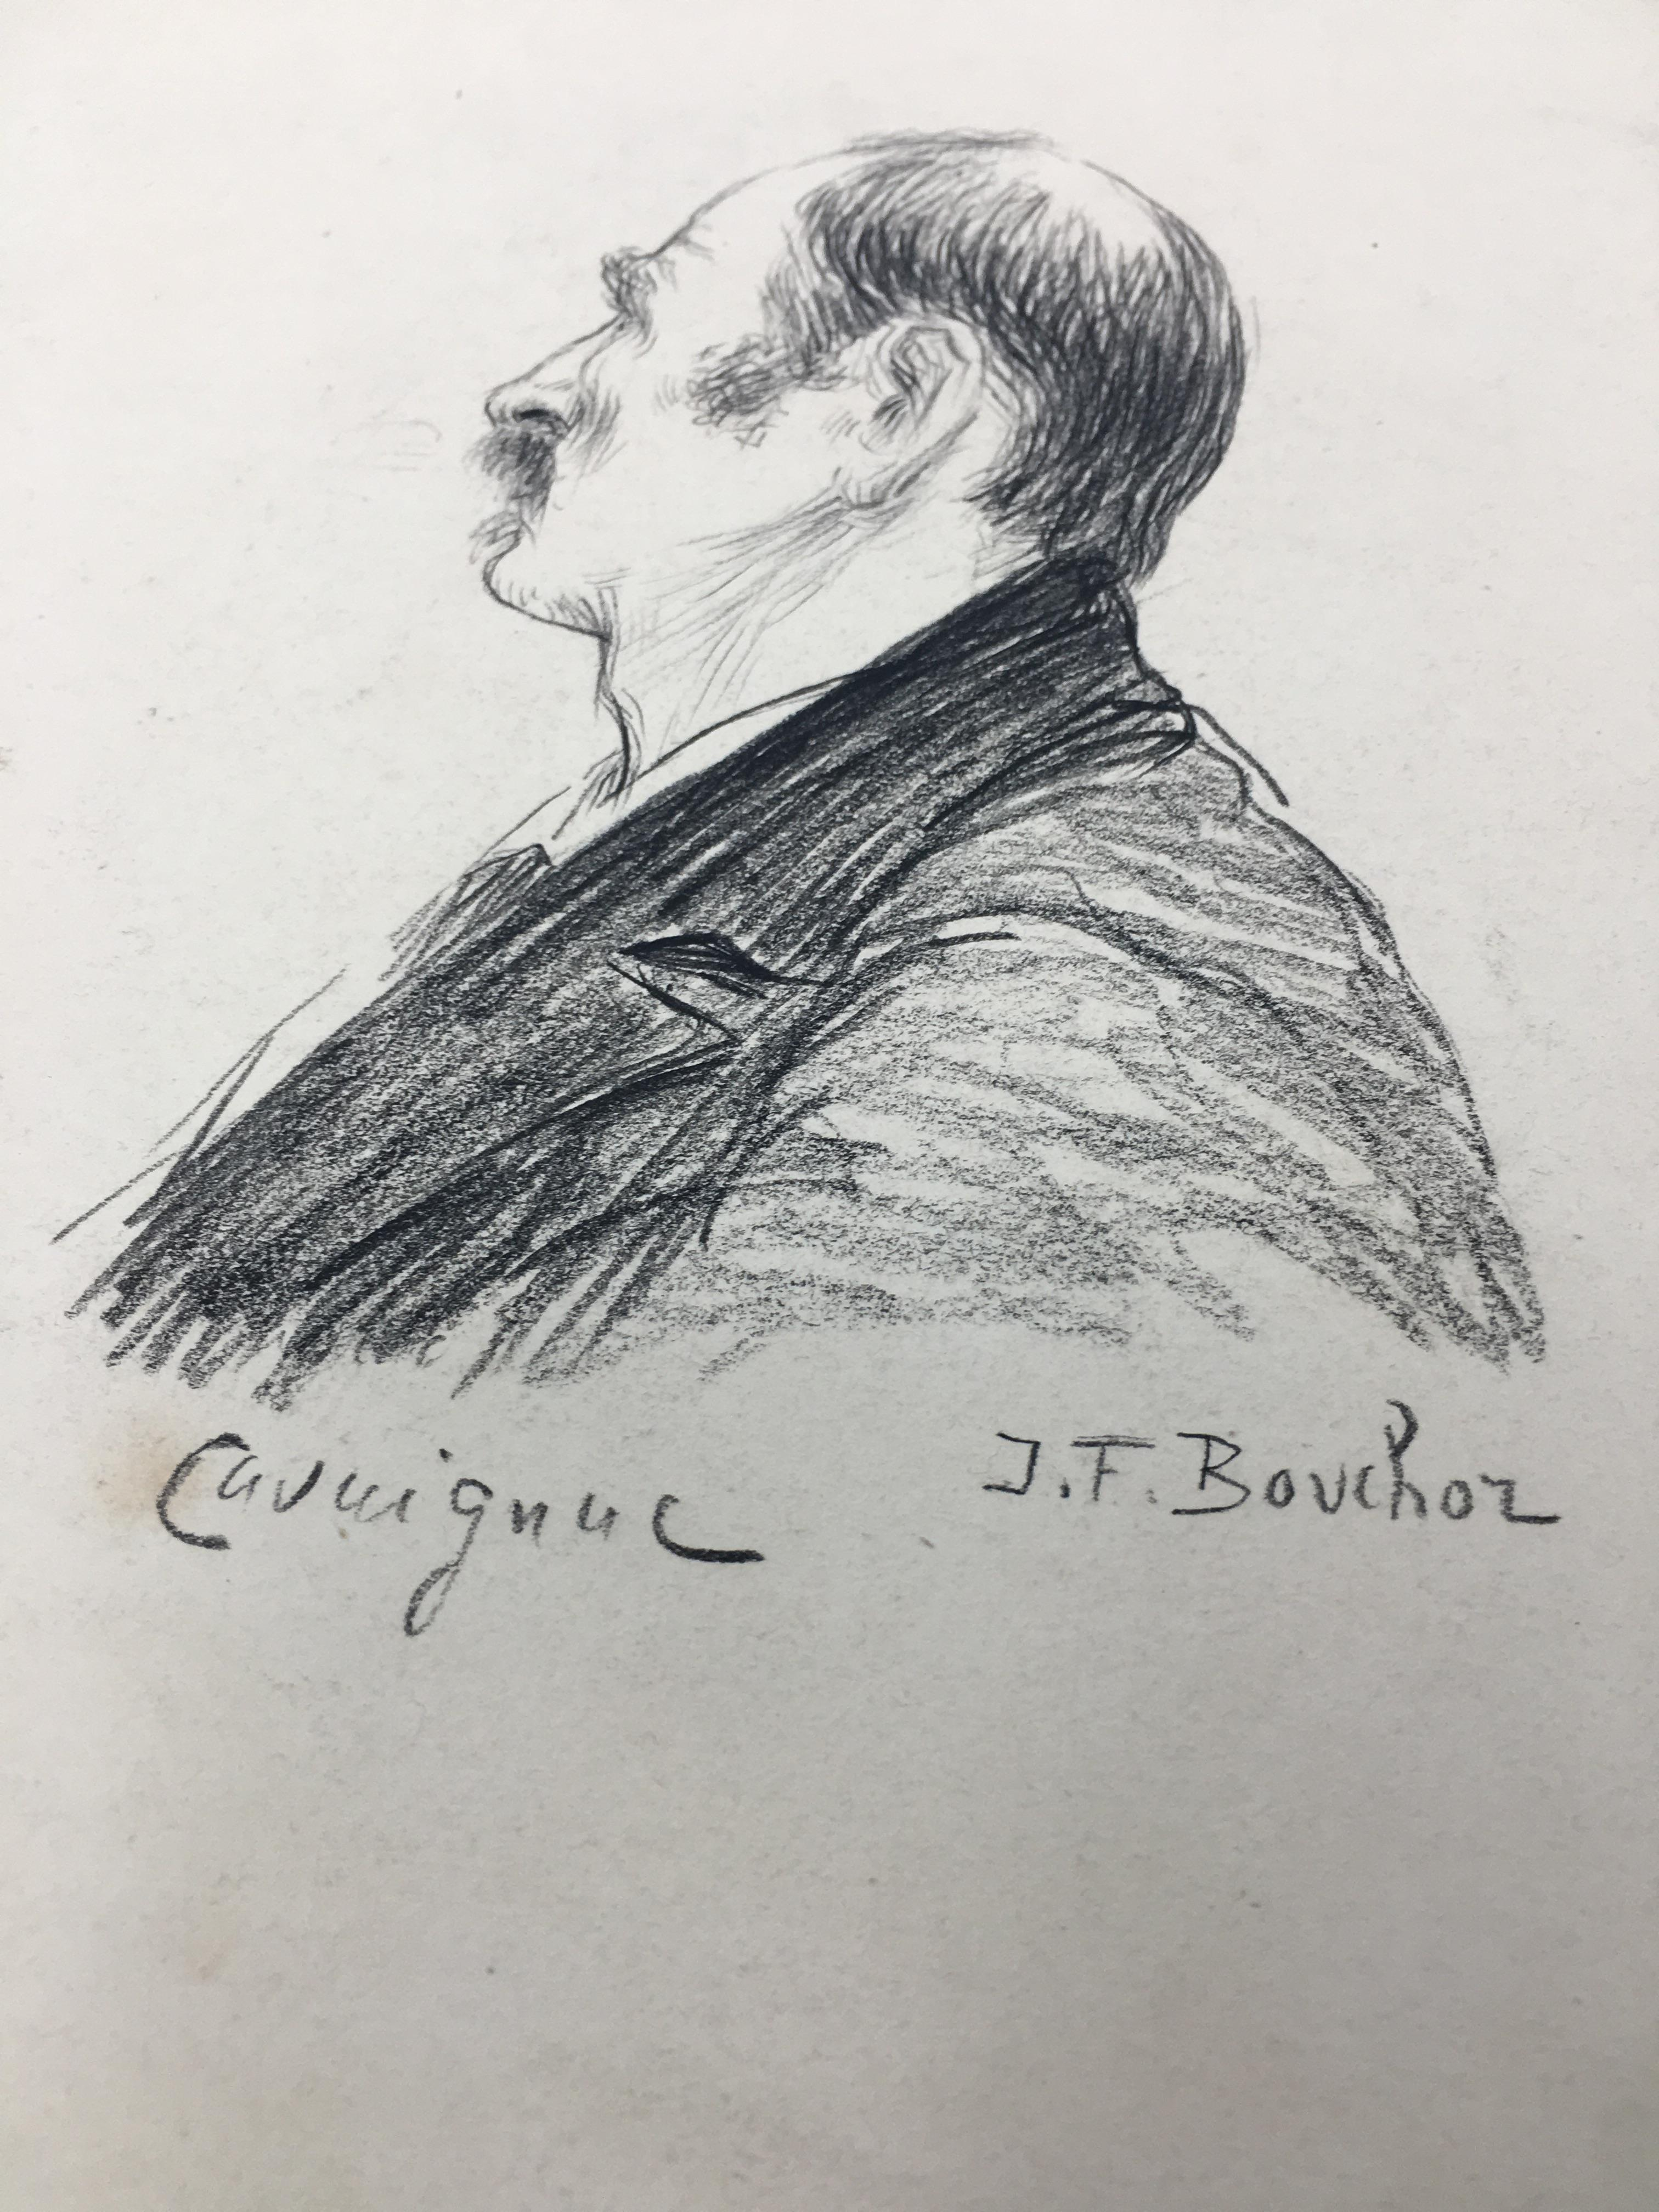 J'Accuse Newspaper, Emile Zola Quote, Signed Dreyfus Portrait, Rare Trial Drawings & Schwartzkoppen - Image 47 of 74